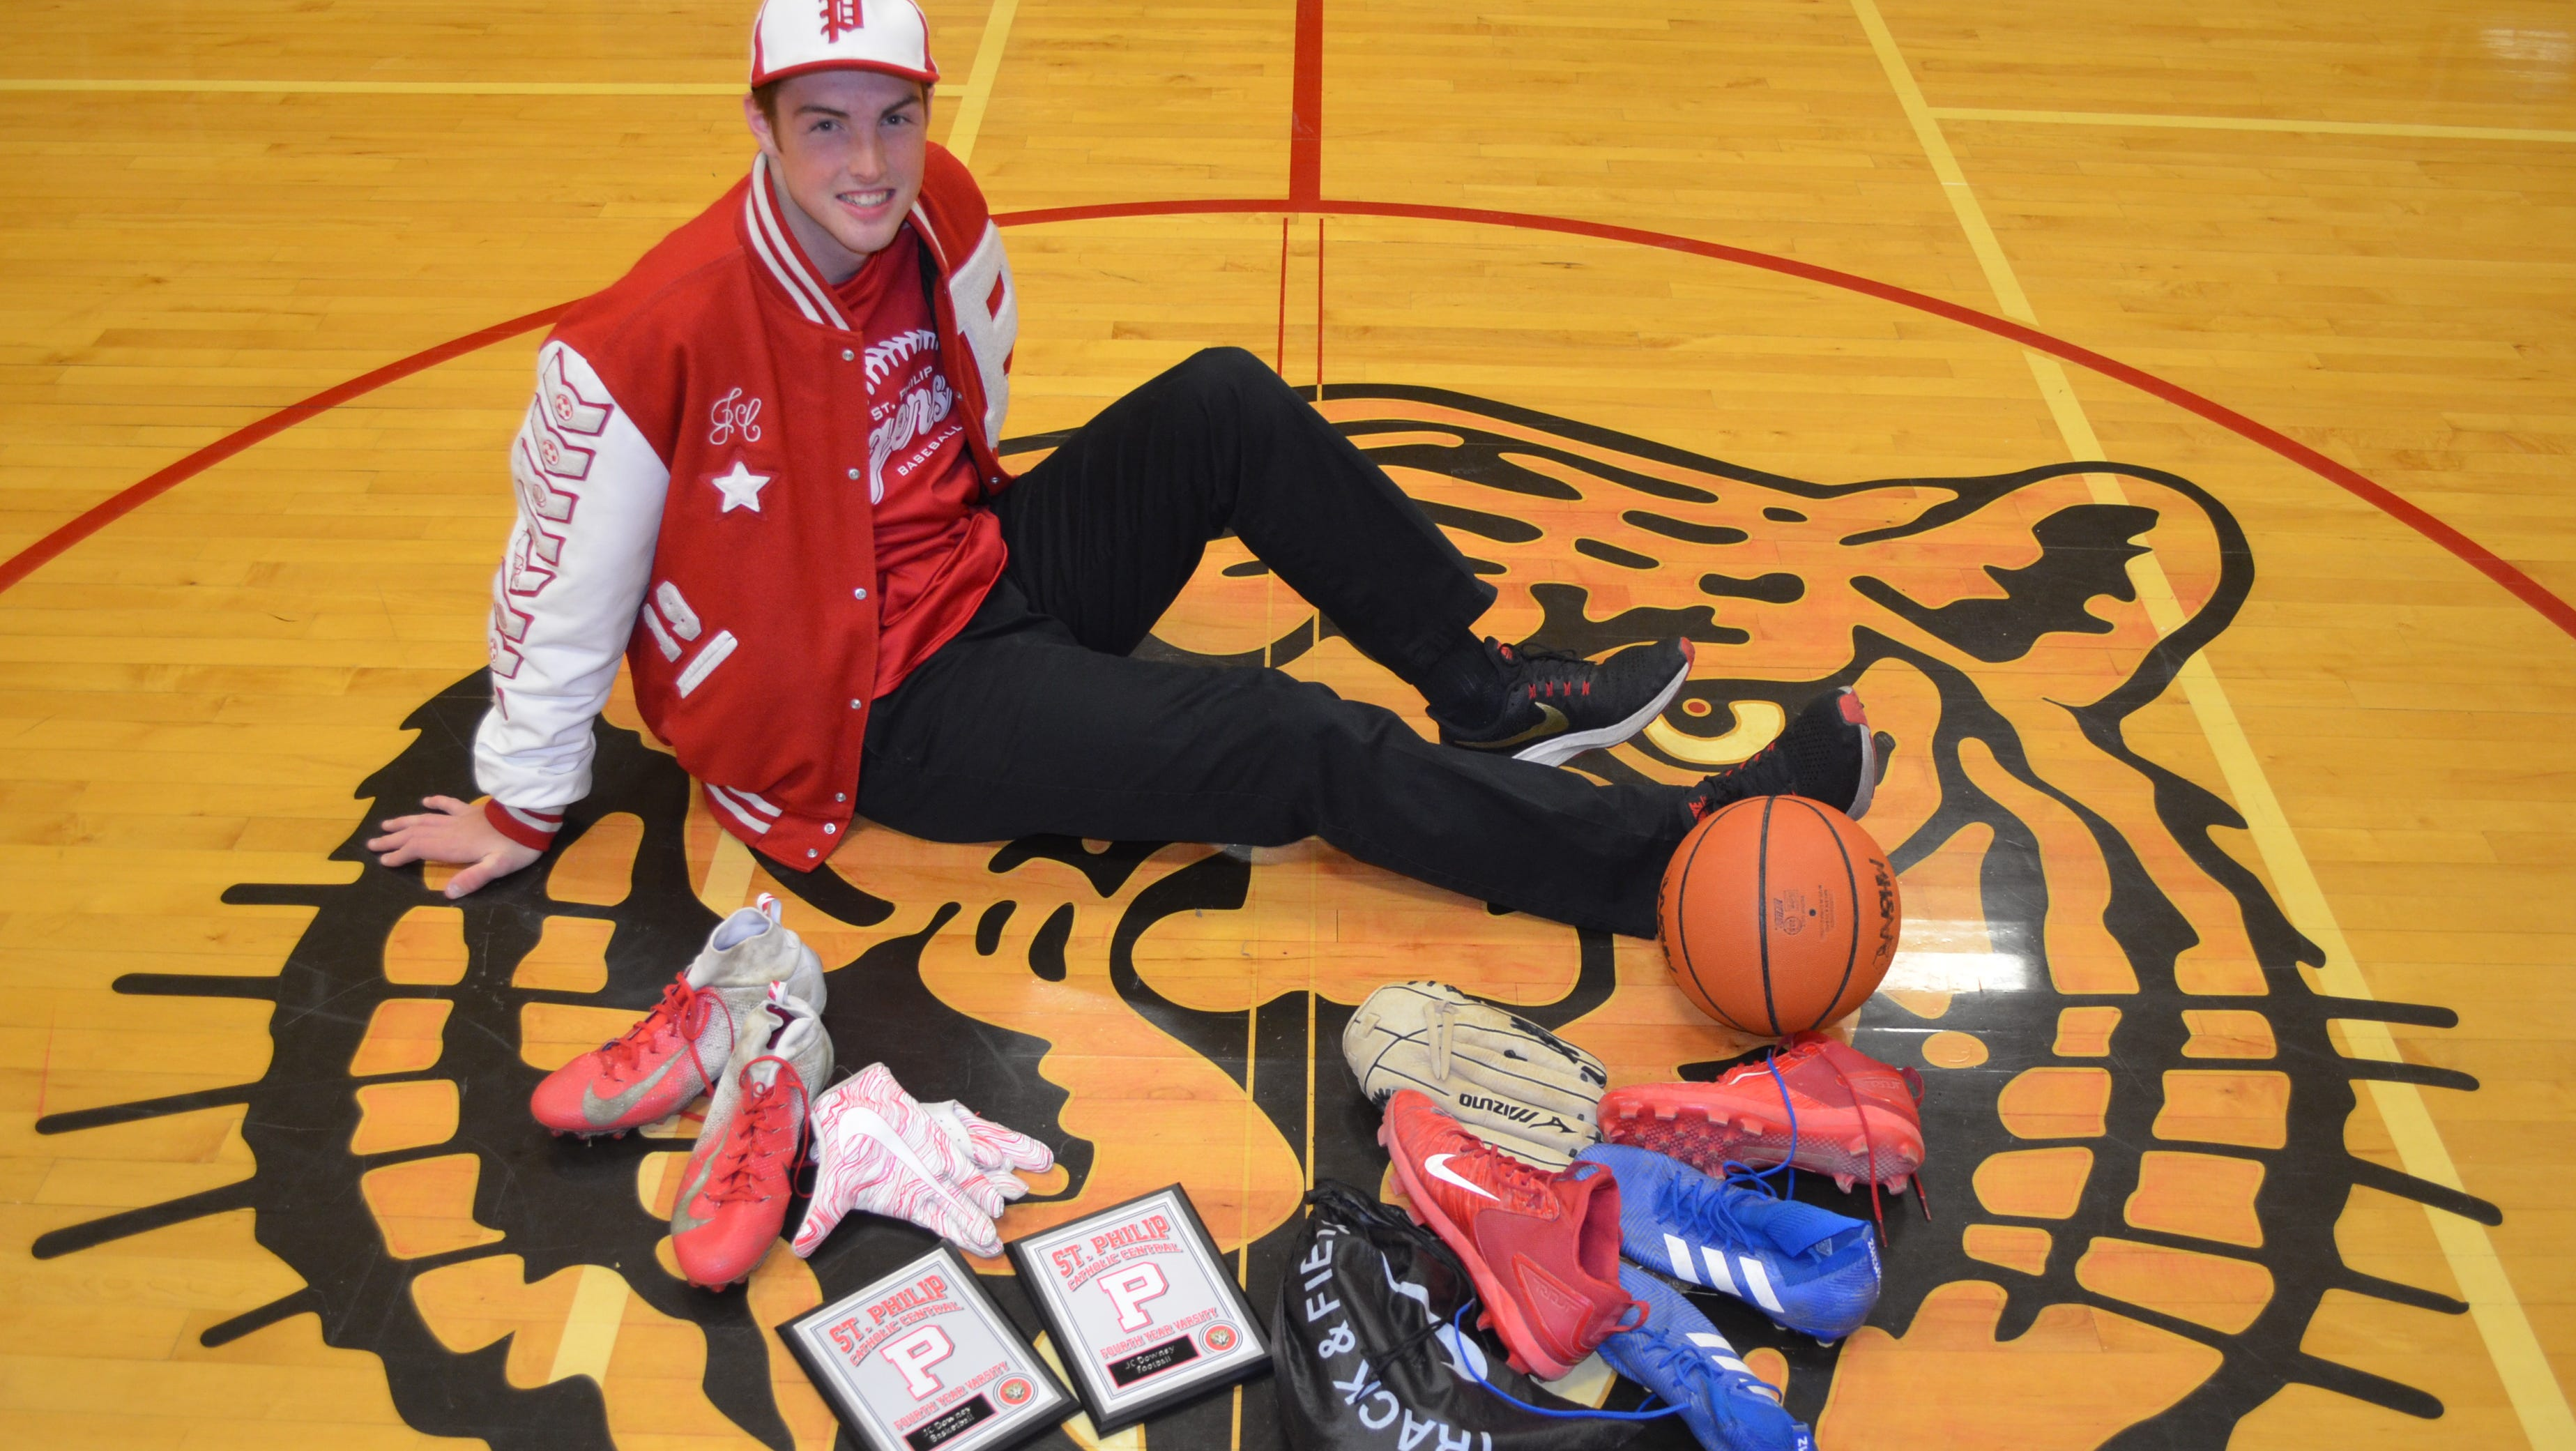 St. Philip senior JC Downey will finish his high school career with 19 varsity letters, competing in both baseball and track in the spring, basketball in the winter and both soccer and football in the fall.